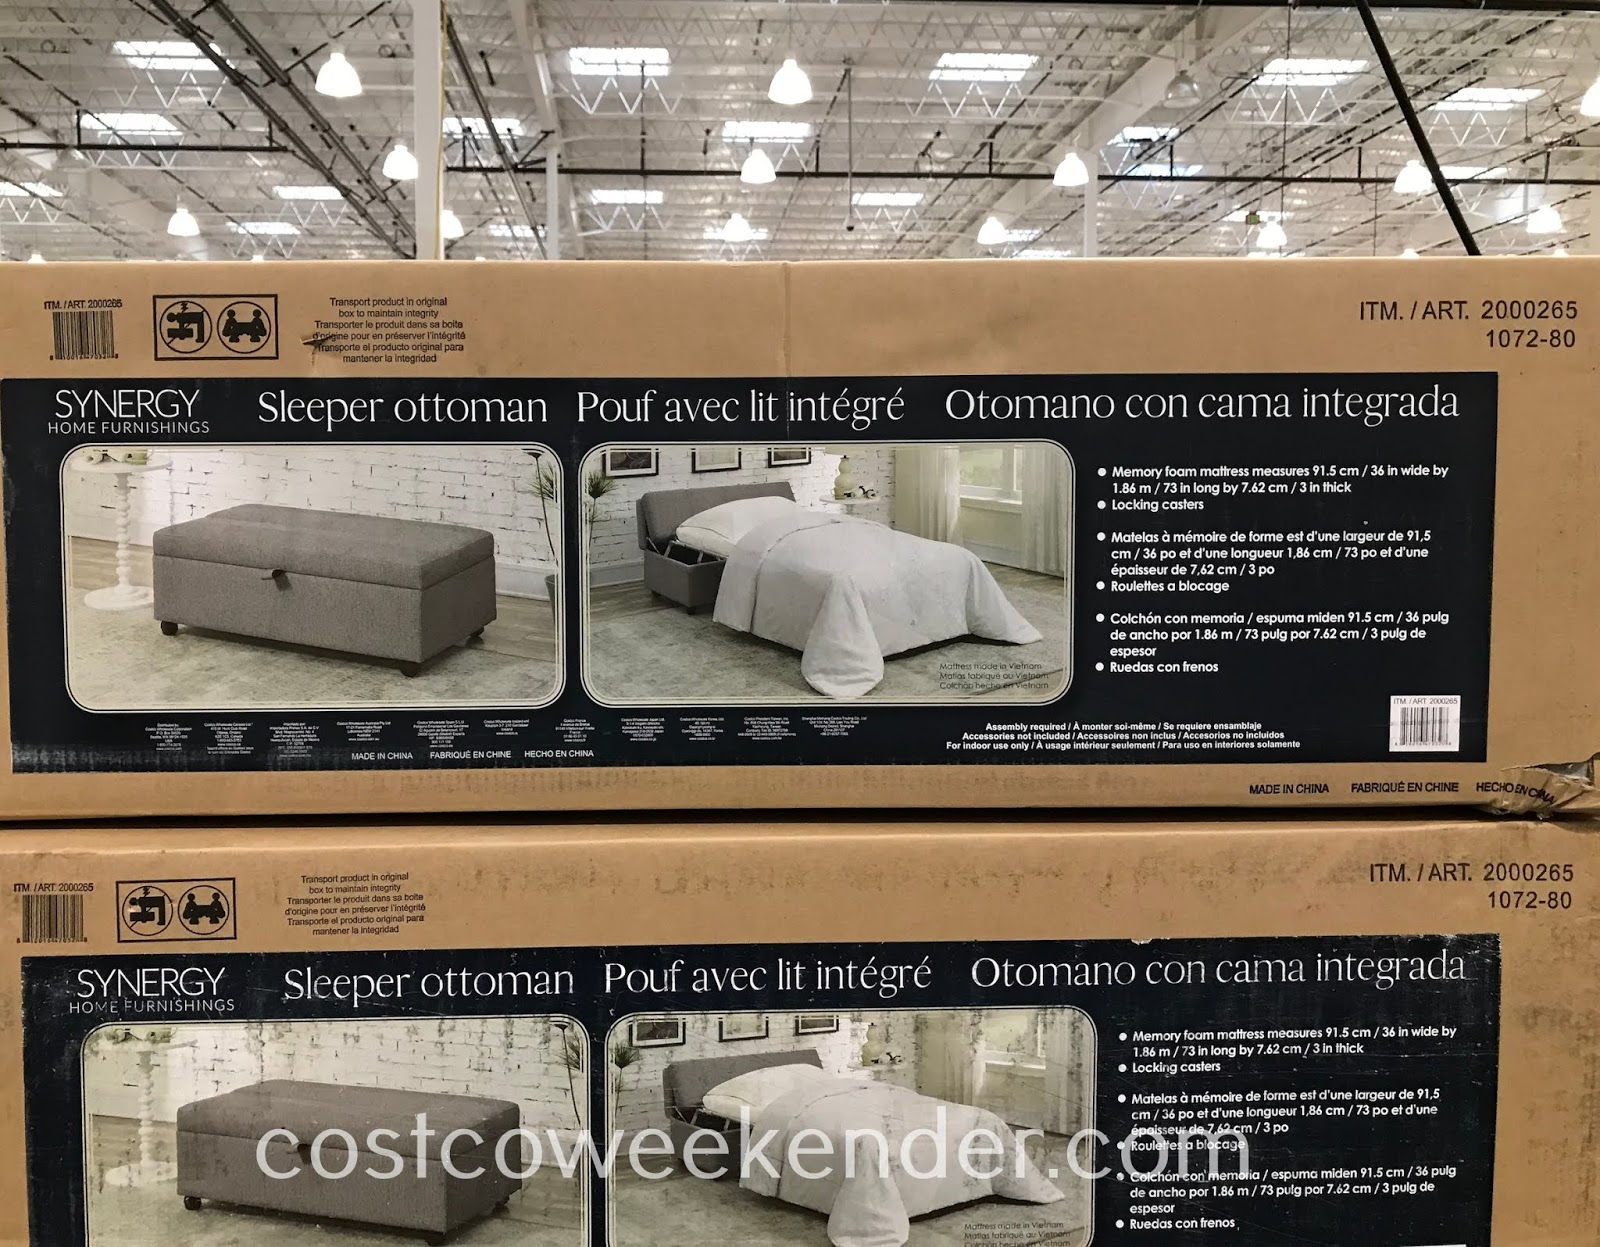 Costco 2000265 - Synergy Fabric Sleeper Ottoman: practical to have in your home